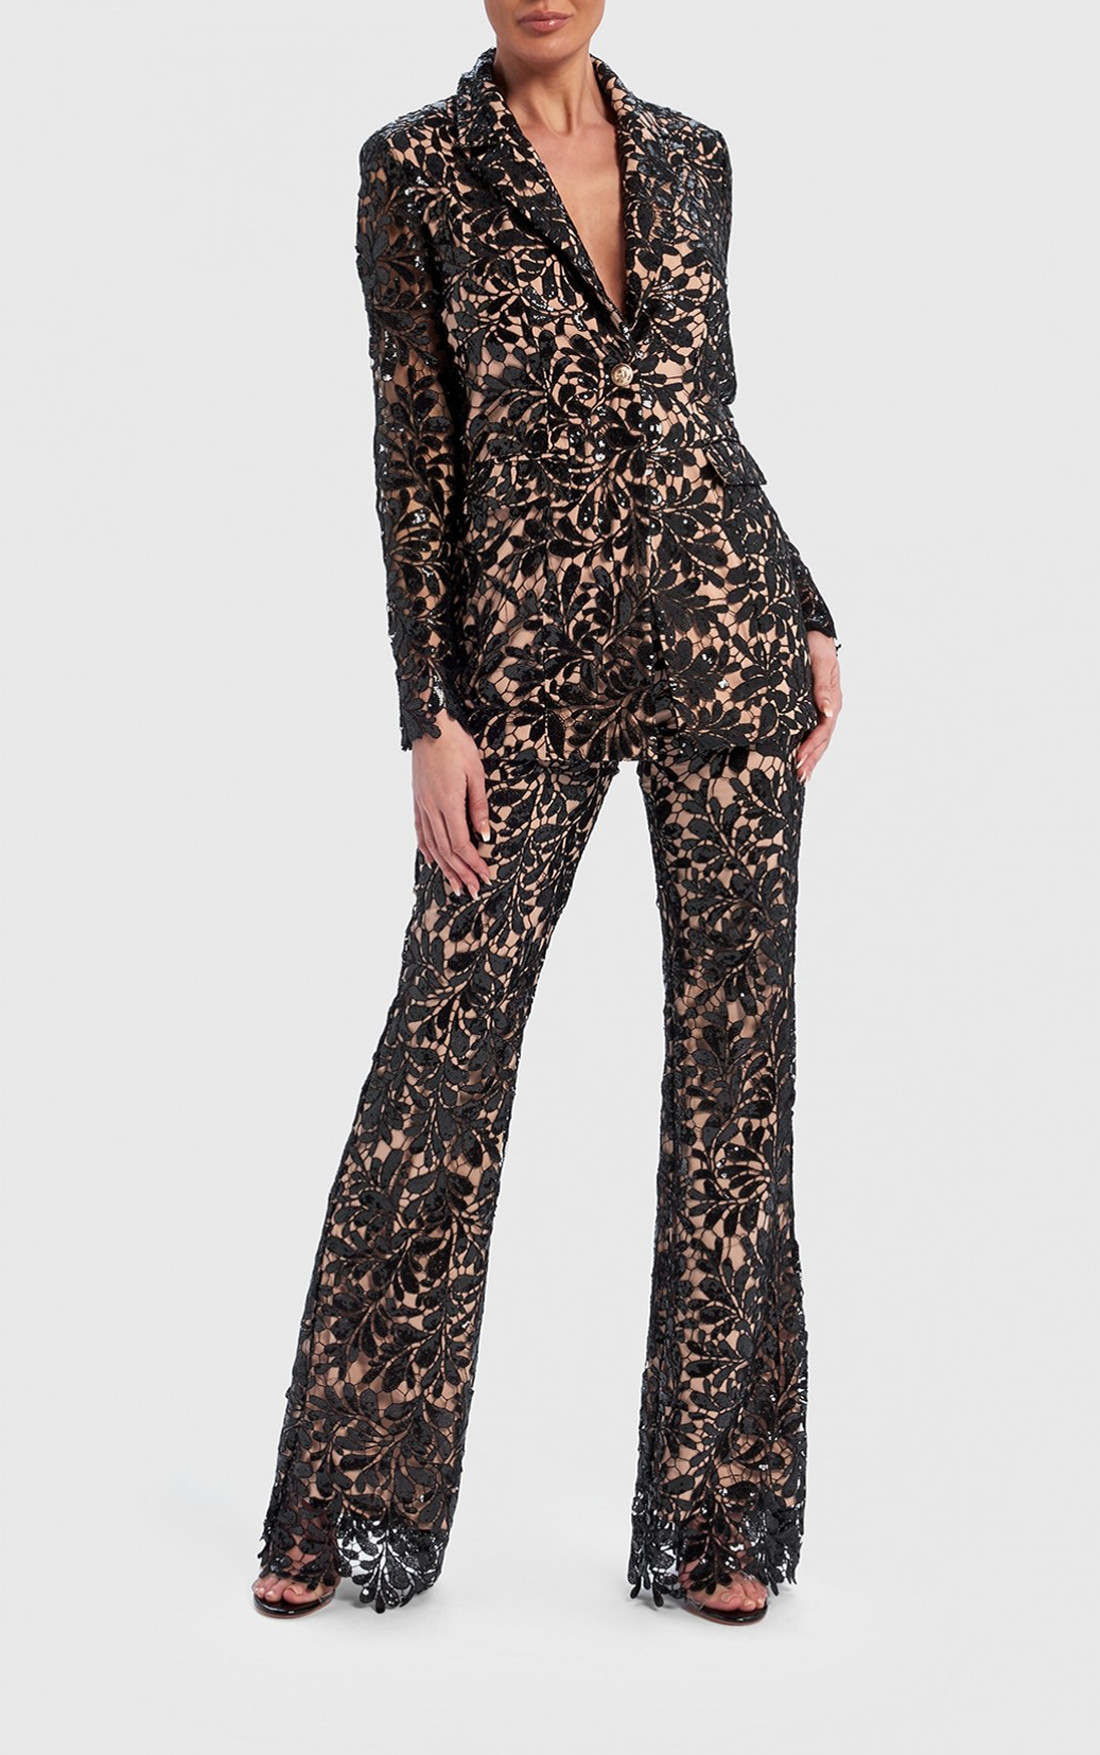 Forever Unique - Serena Black And Nude Floral Sequin Sheer Blazer Jacket (AF1106)